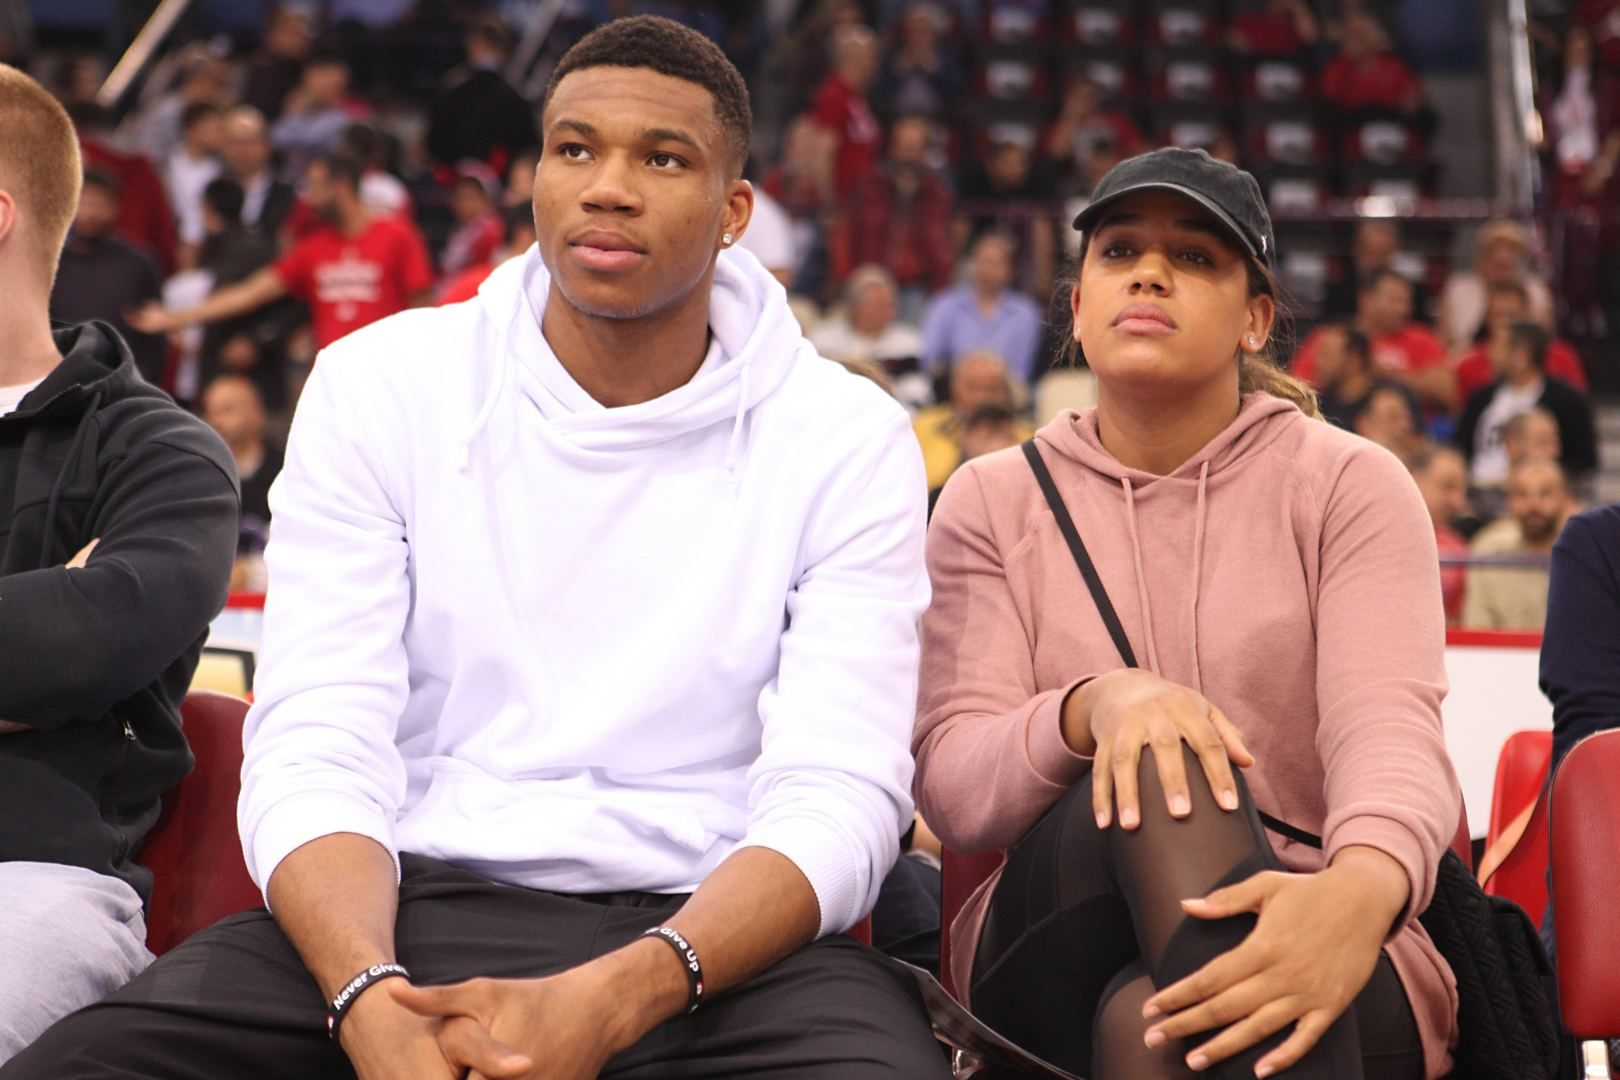 Giannis Antetokounmpo Admits the Super Bowl Halftime Show Almost Got Him in Trouble